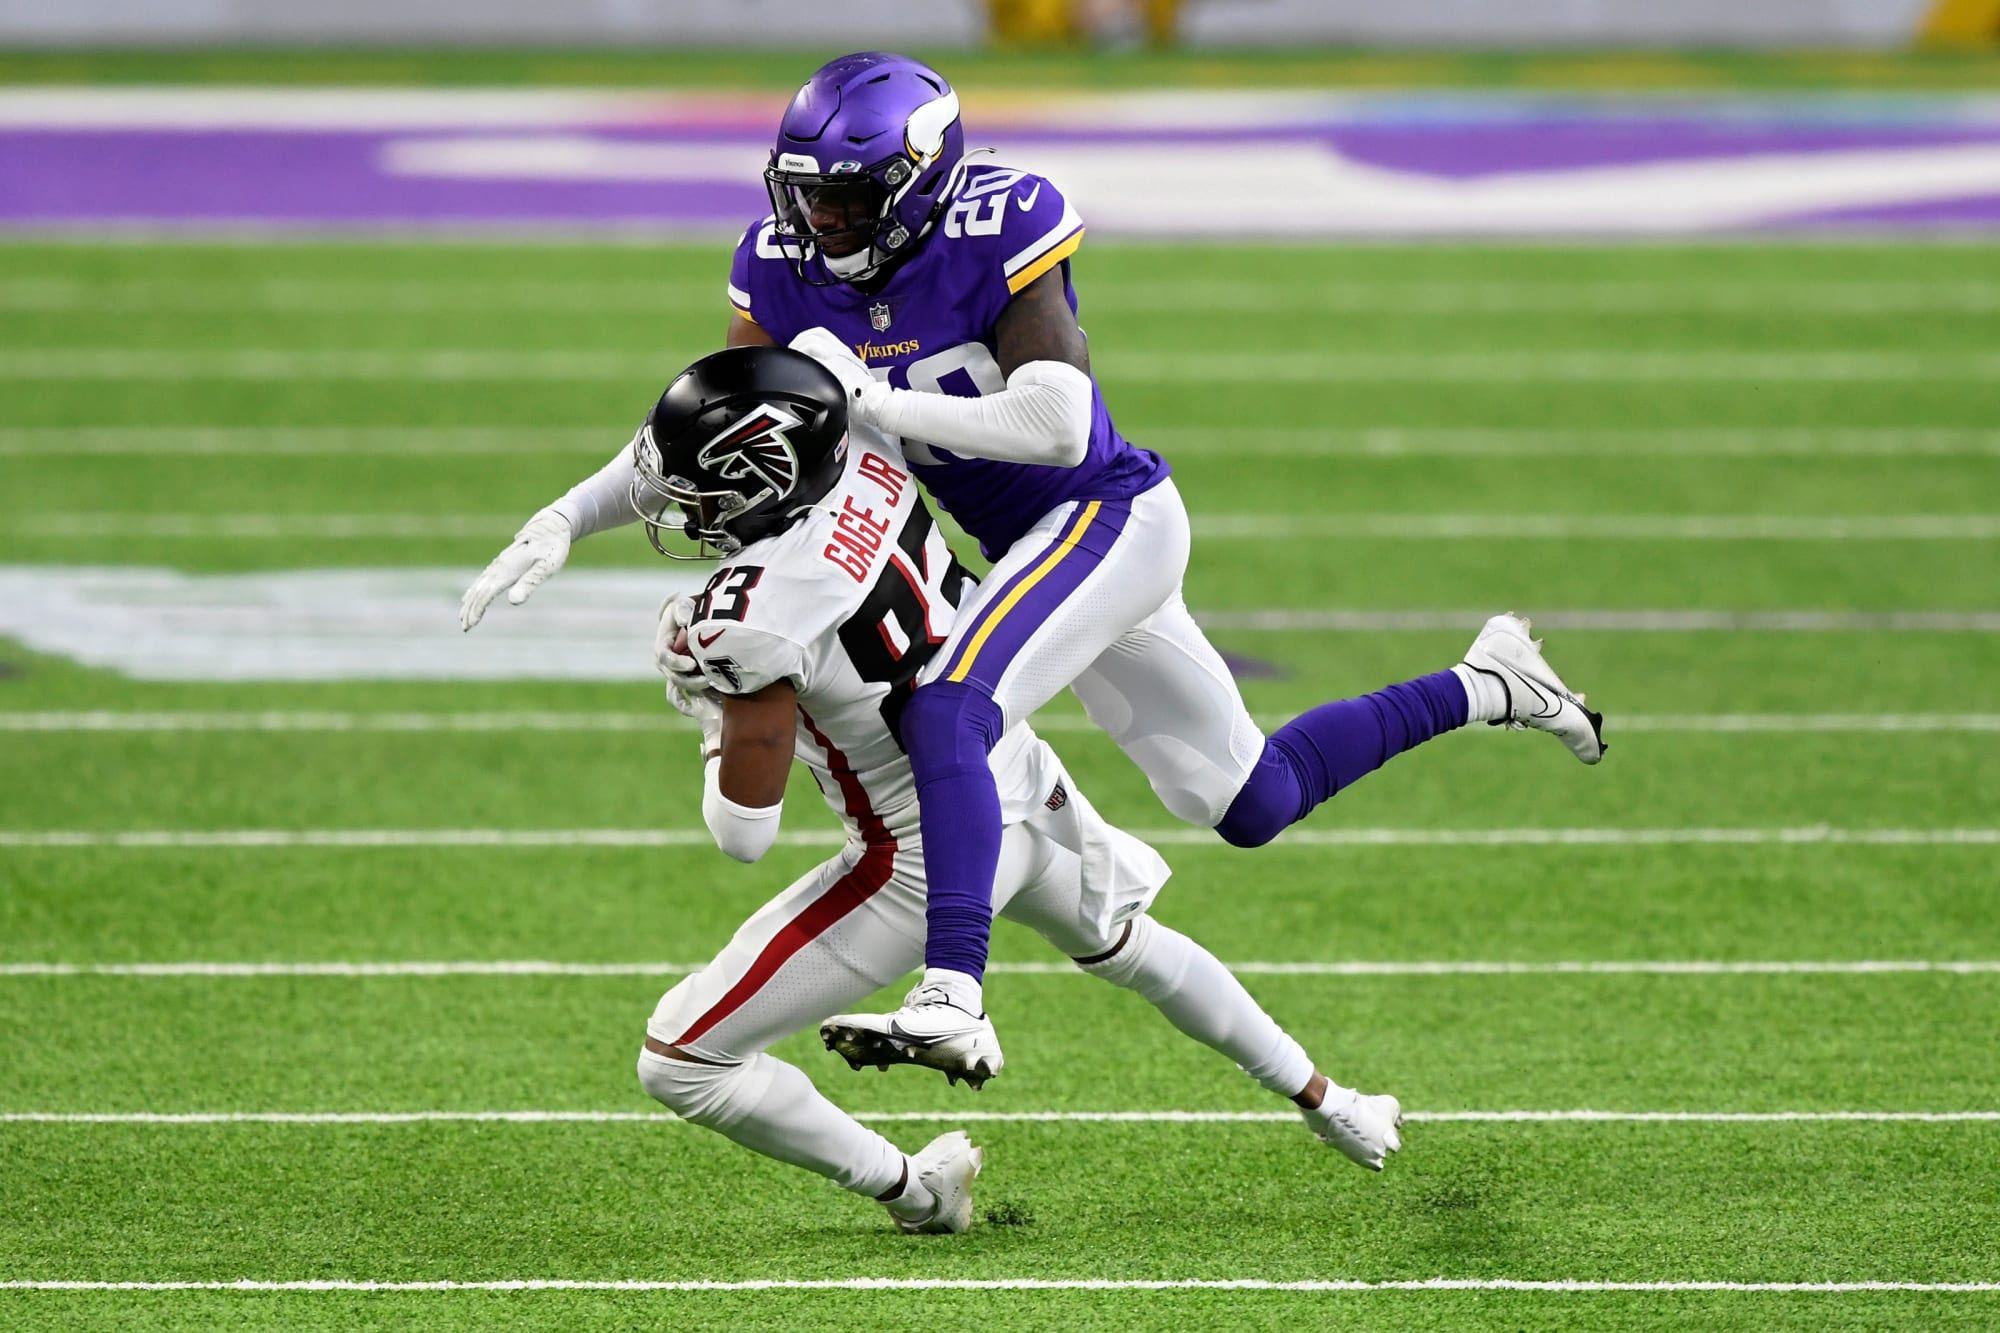 No need to worry about the future of Jeff Gladney in Minnesota - The Viking Age